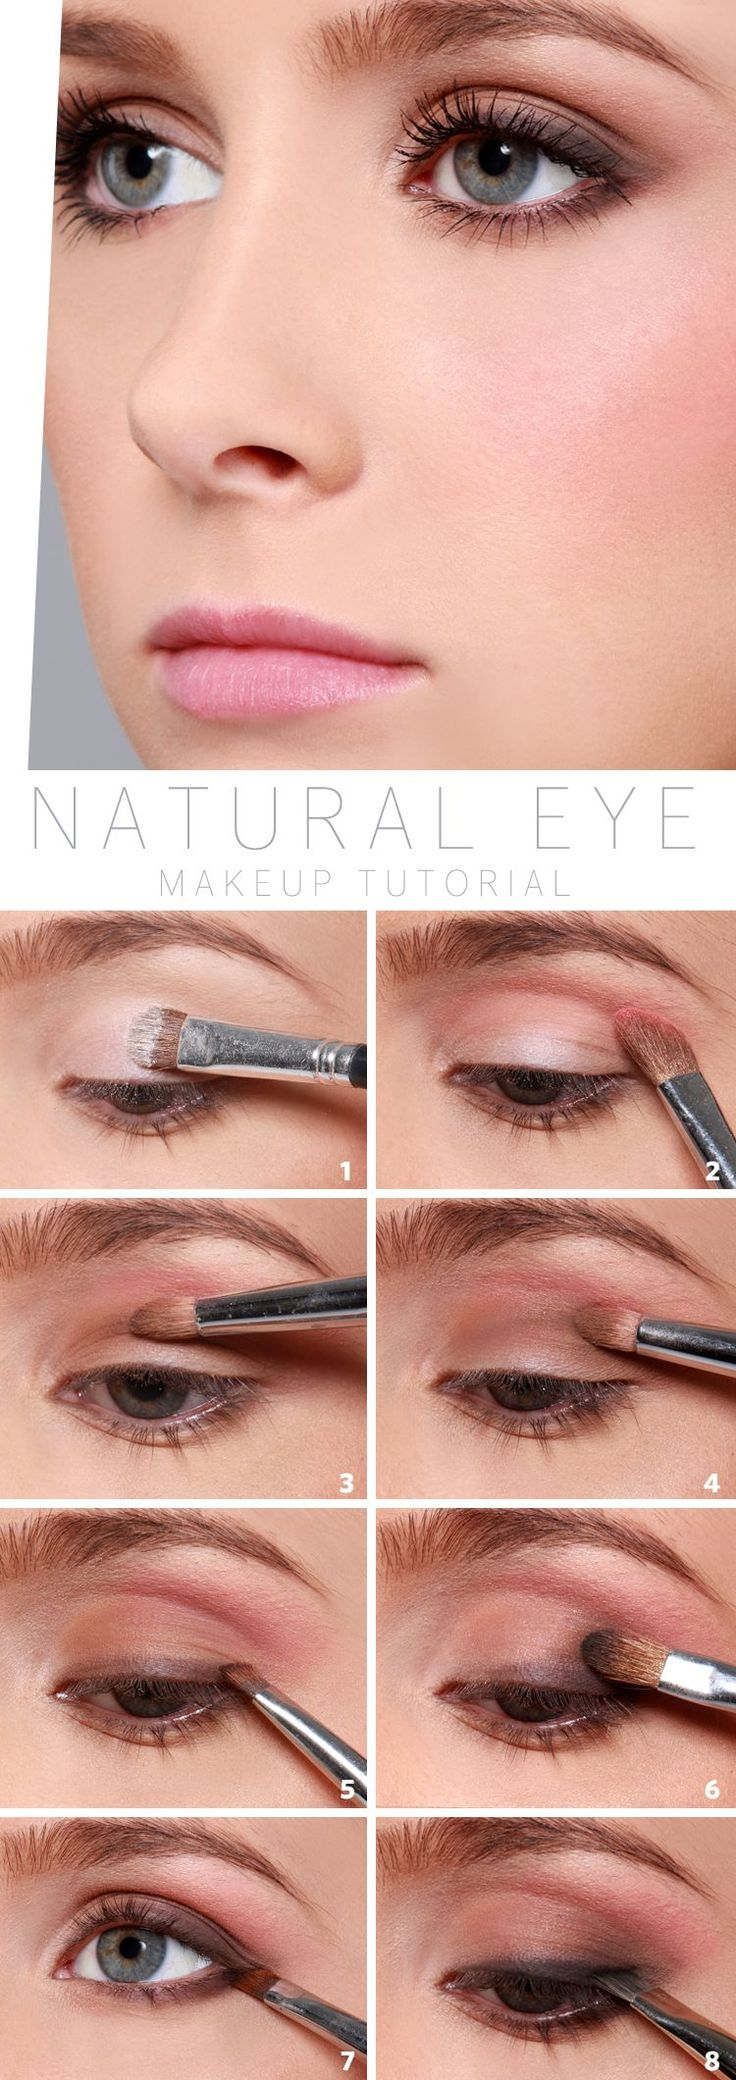 LuLu*s How-To: Natural Eye Makeup Tutorial via lulus.com